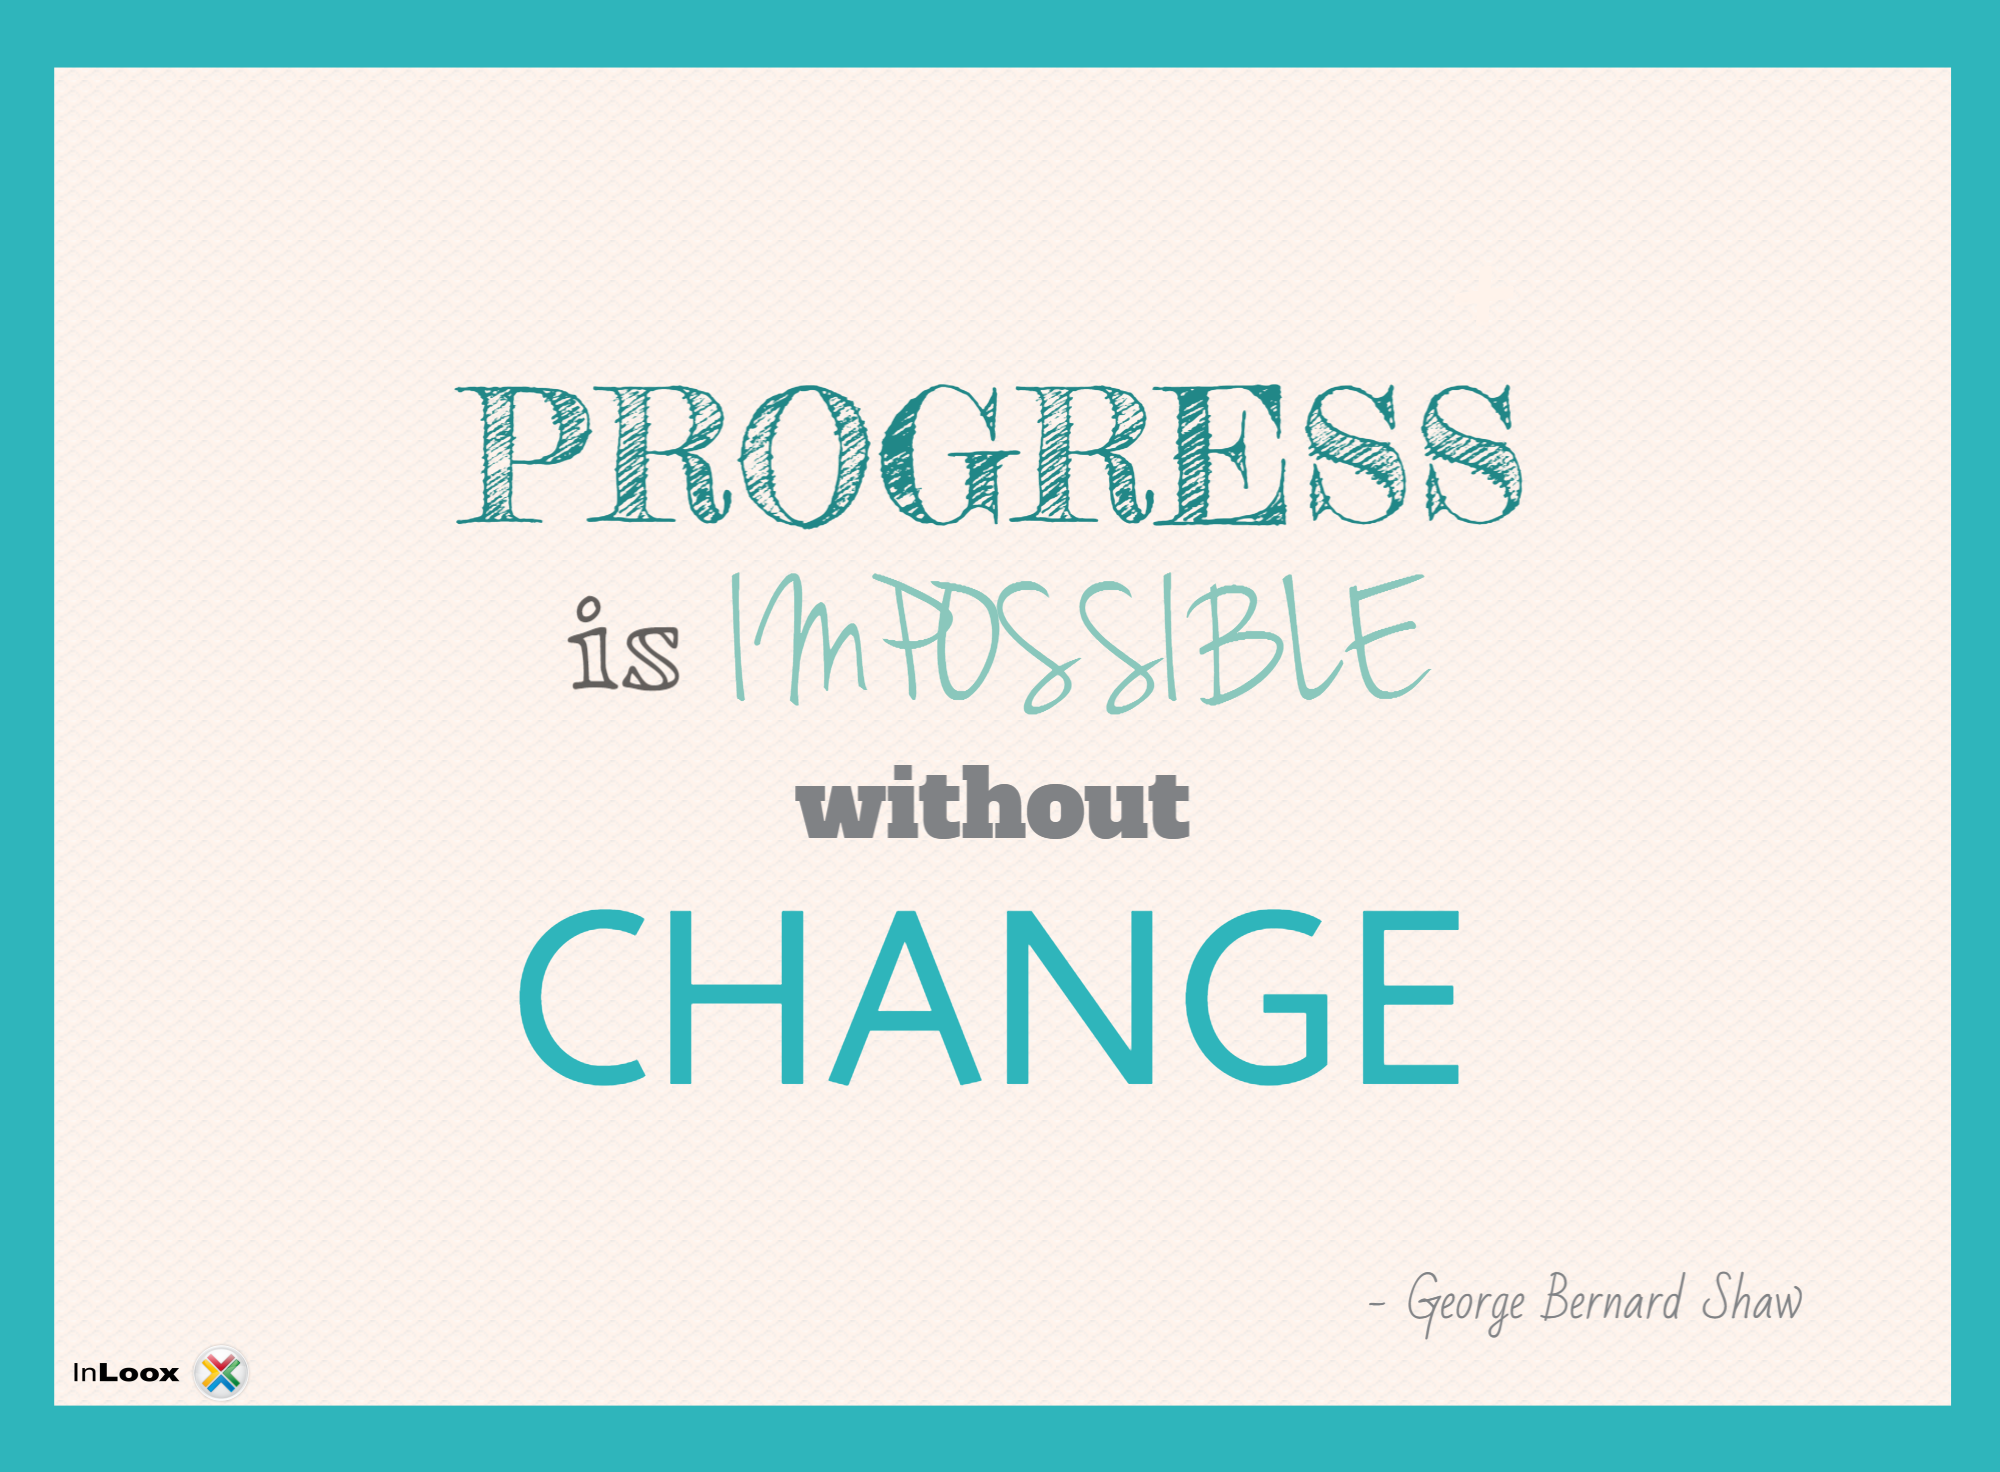 3 Reasons Why Change is Good For Business